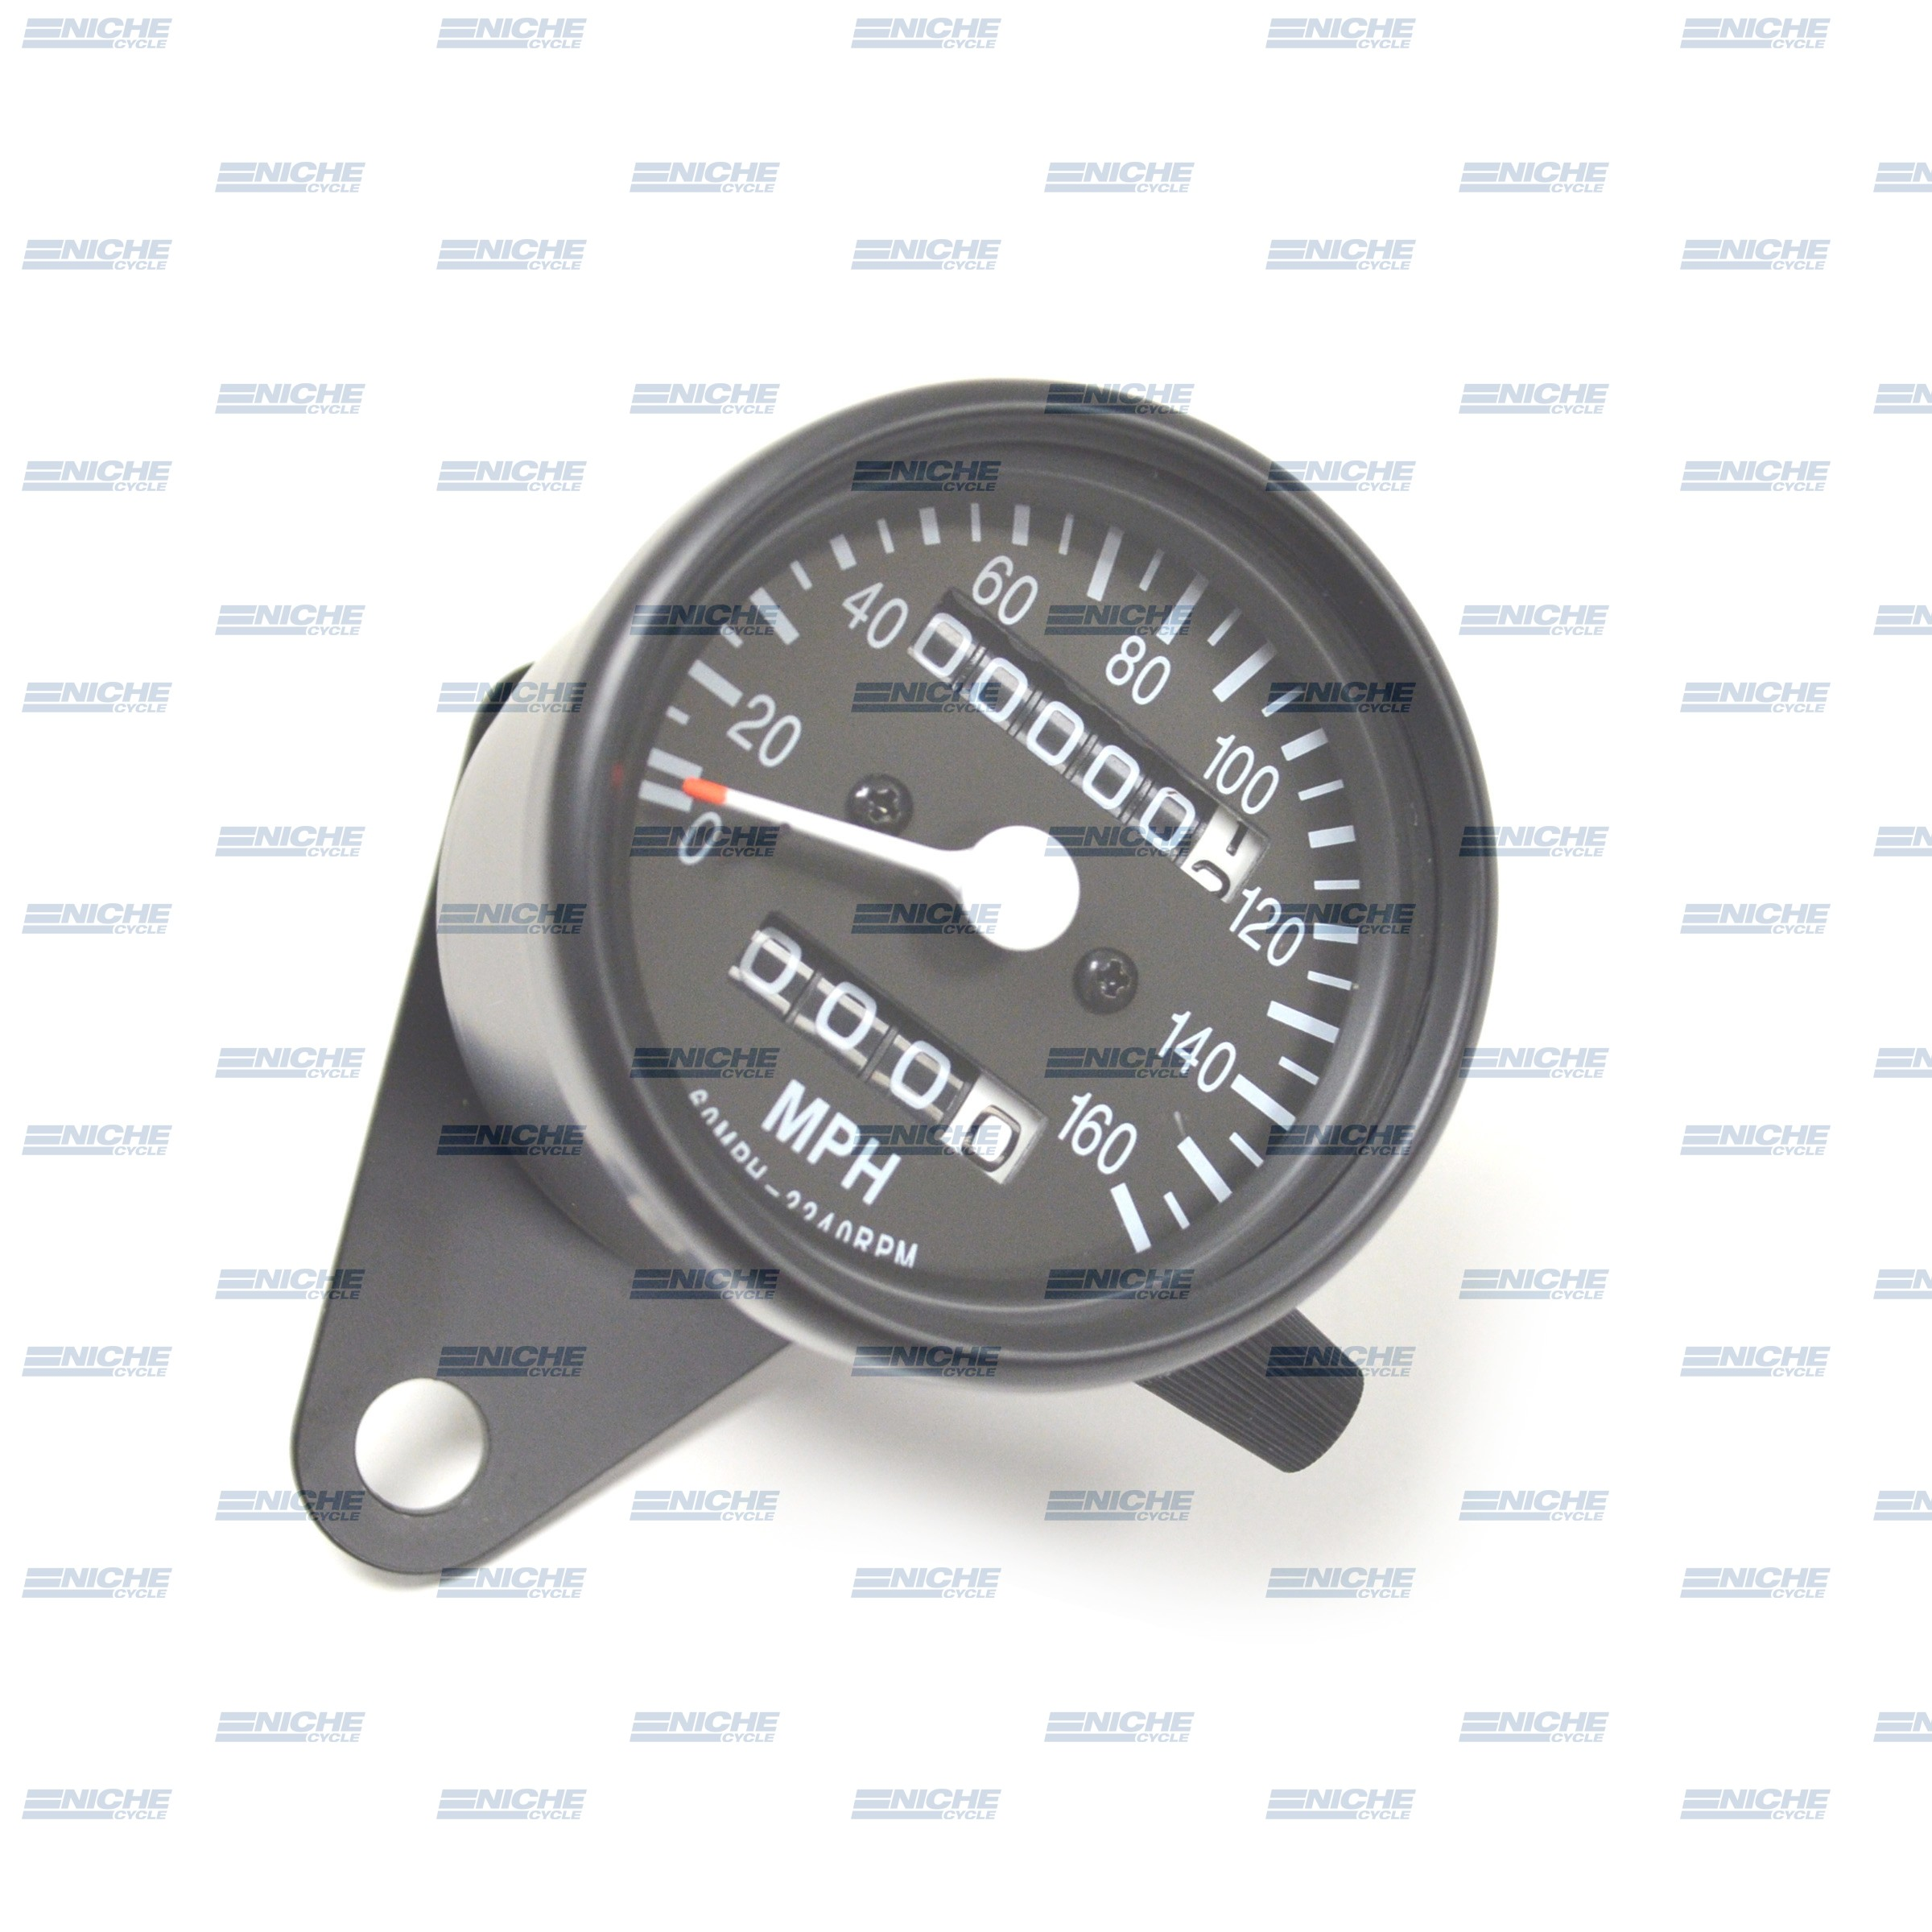 Mini Speedometer Gauge 160 MPH - 2.1:1 Ratio 58-43664B